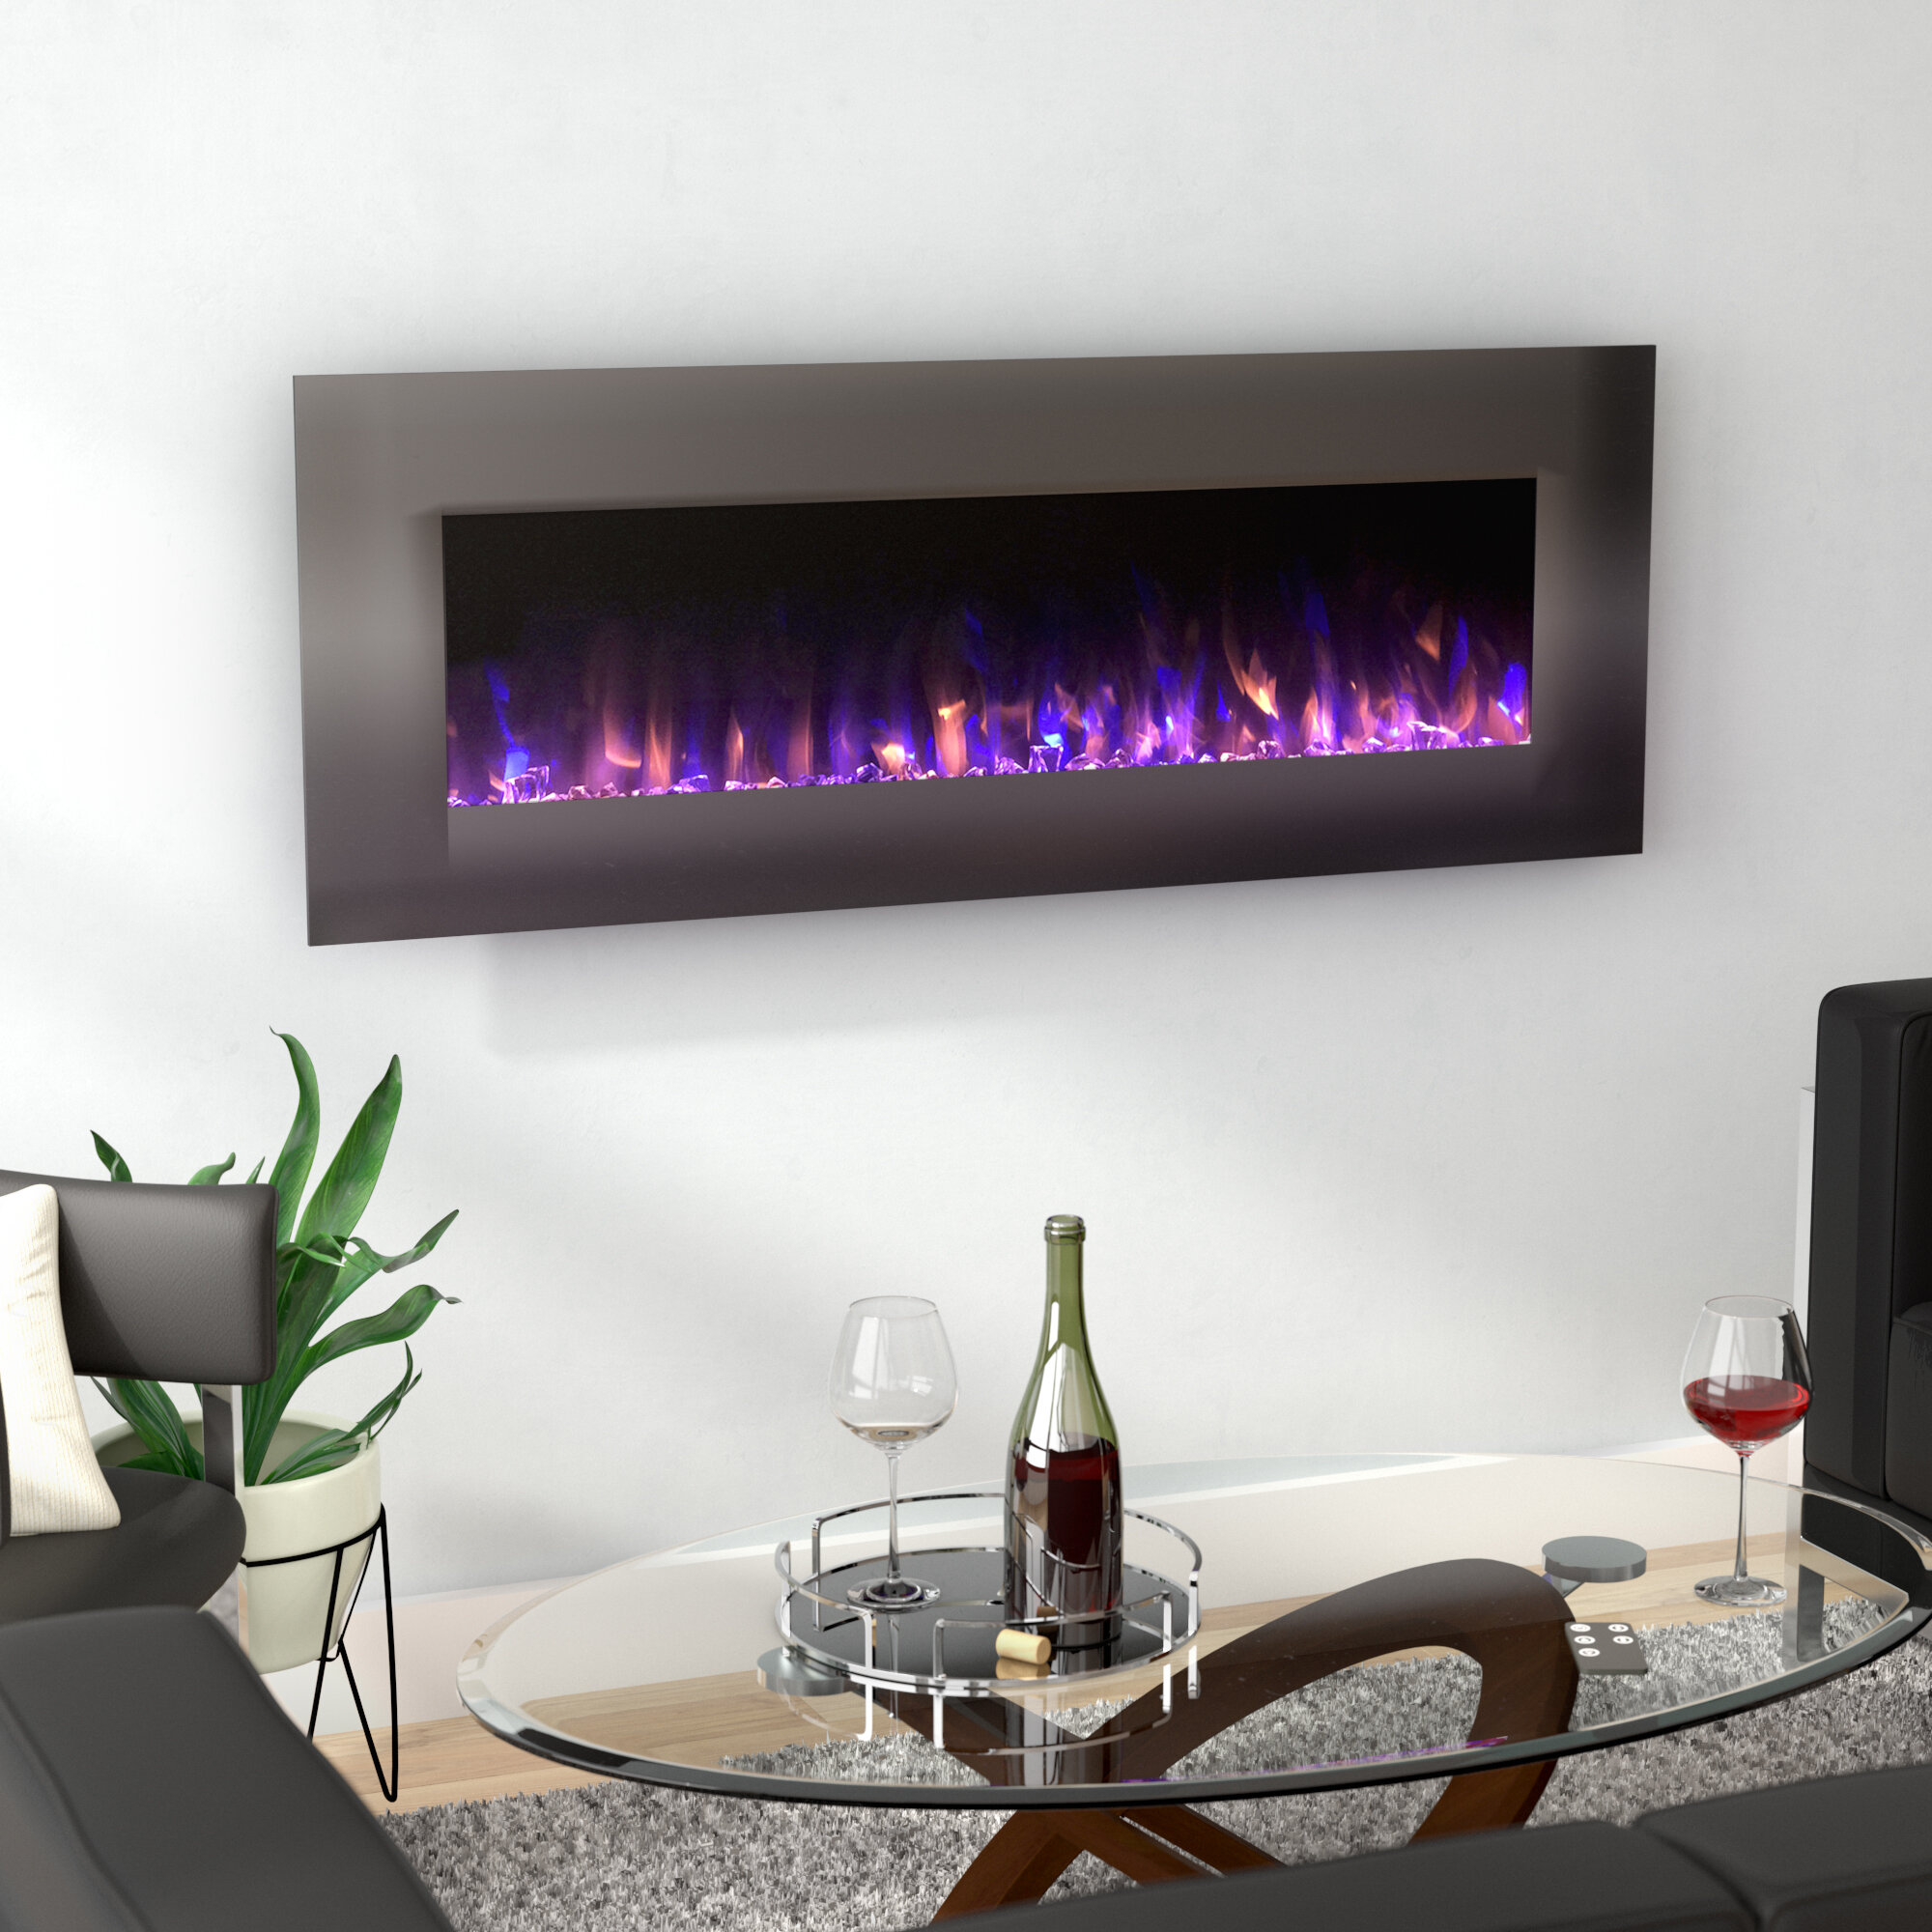 well stainless steel ethanol traveled hanging bookshelves fake wall built recessed unit fire pit electric fireplace black with tv stand in mounted living ideas small tall corner